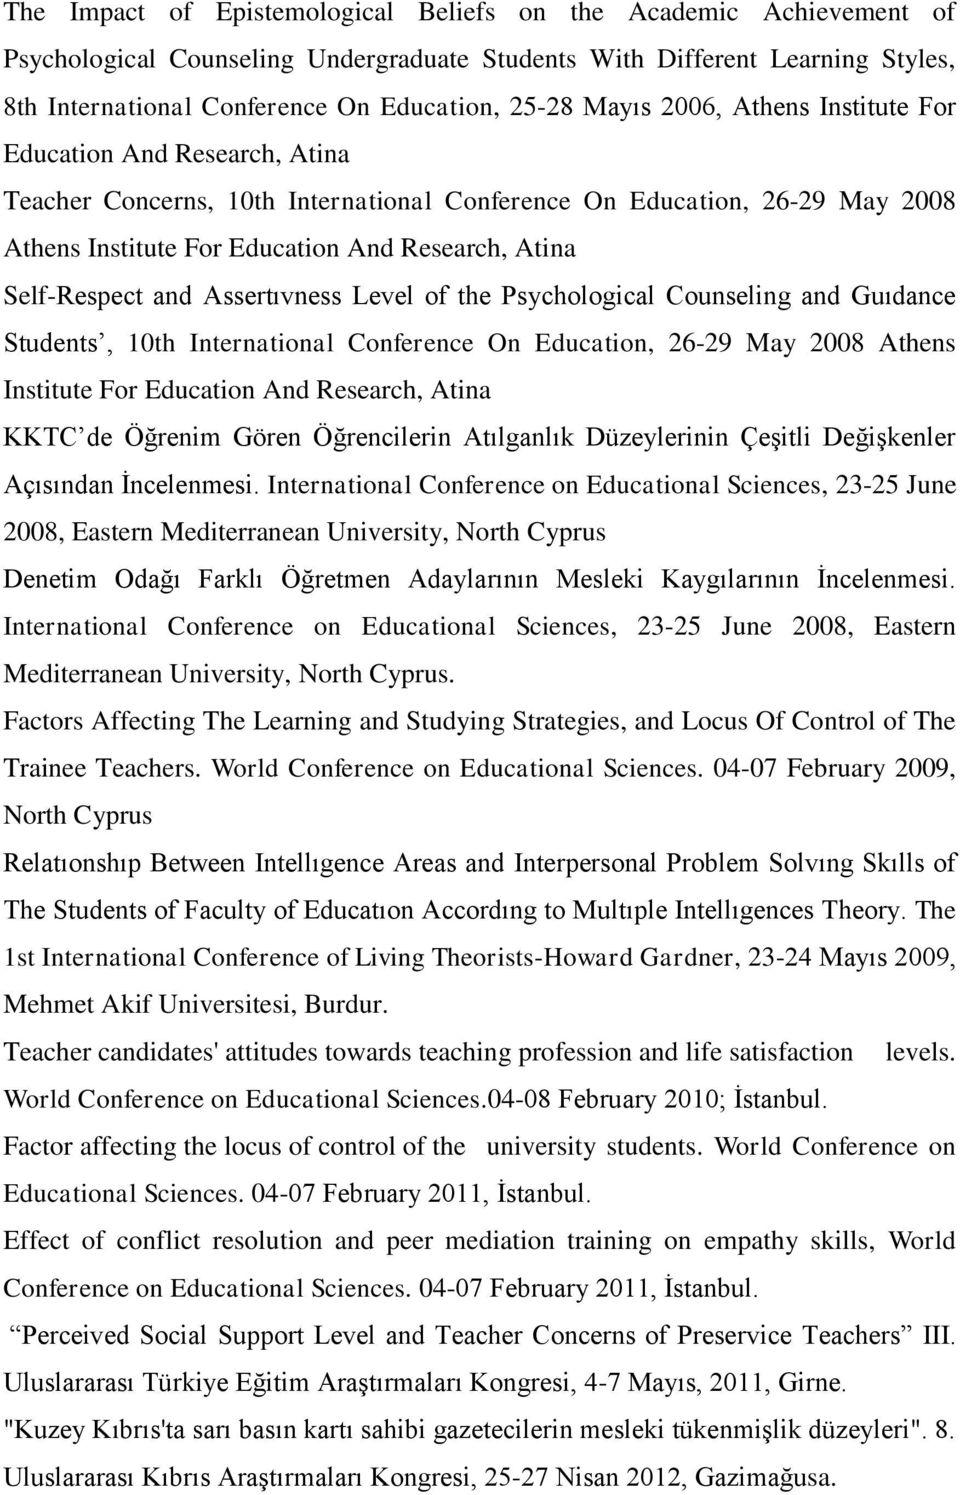 Self-Respect and Assertıvness Level of the Psychological Counseling and Guıdance Students, 10th International Conference On Education, 26-29 May 2008 Athens Institute For Education And Research,